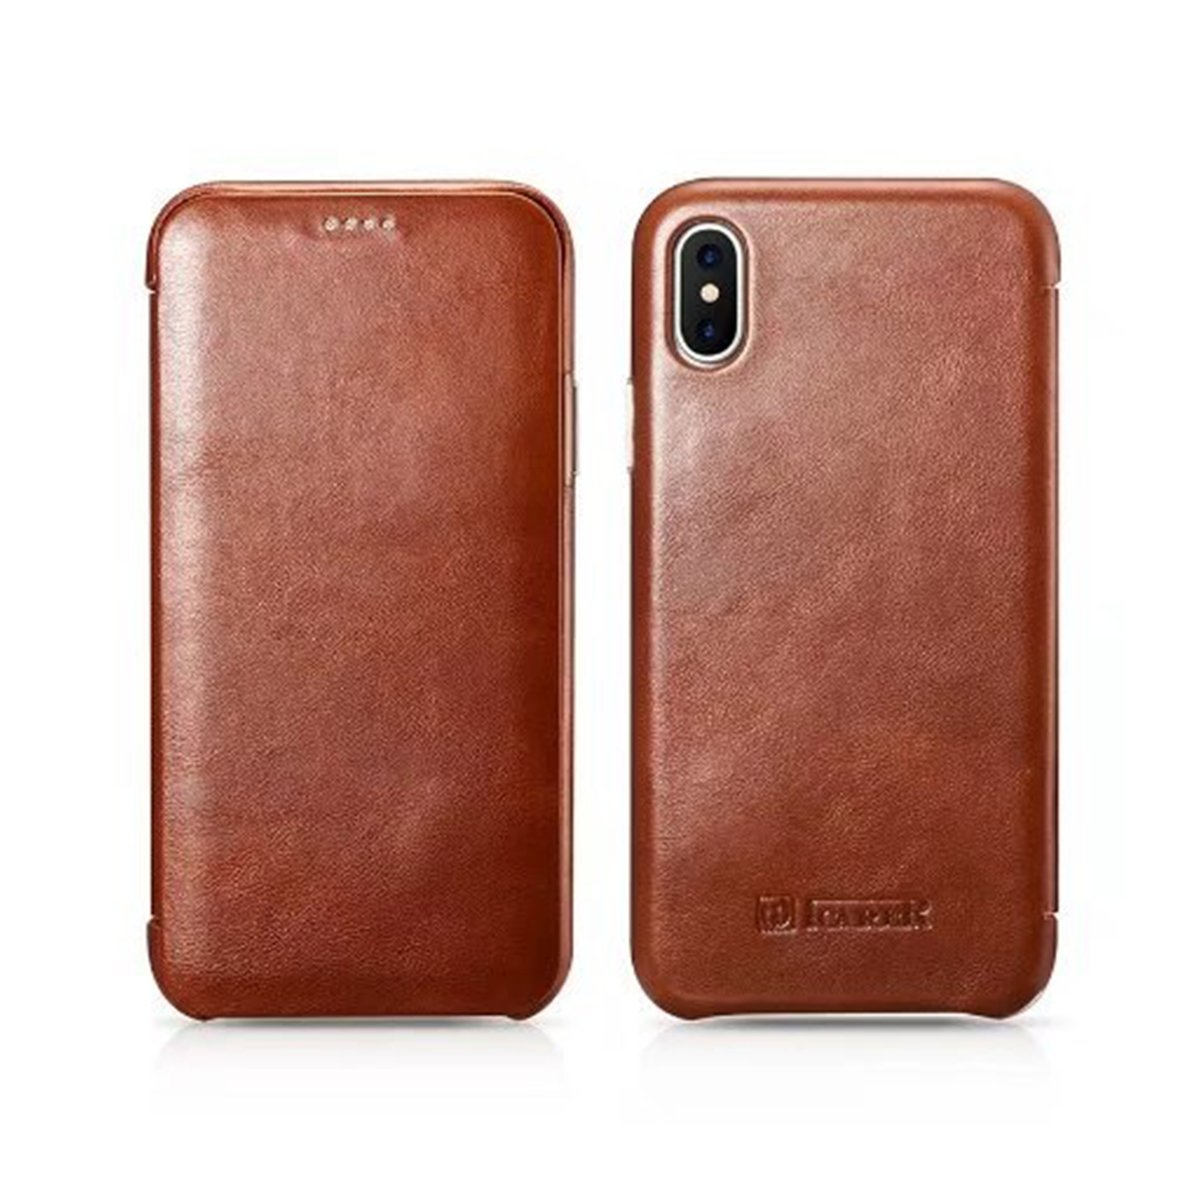 iPhone 7, Red Icarer iPhone 7 Case Ultra Slim Vintage Classic Series Icarercase Genuine Leather Case Folio Cover with Strong Magnetic for Apple iPhone 7